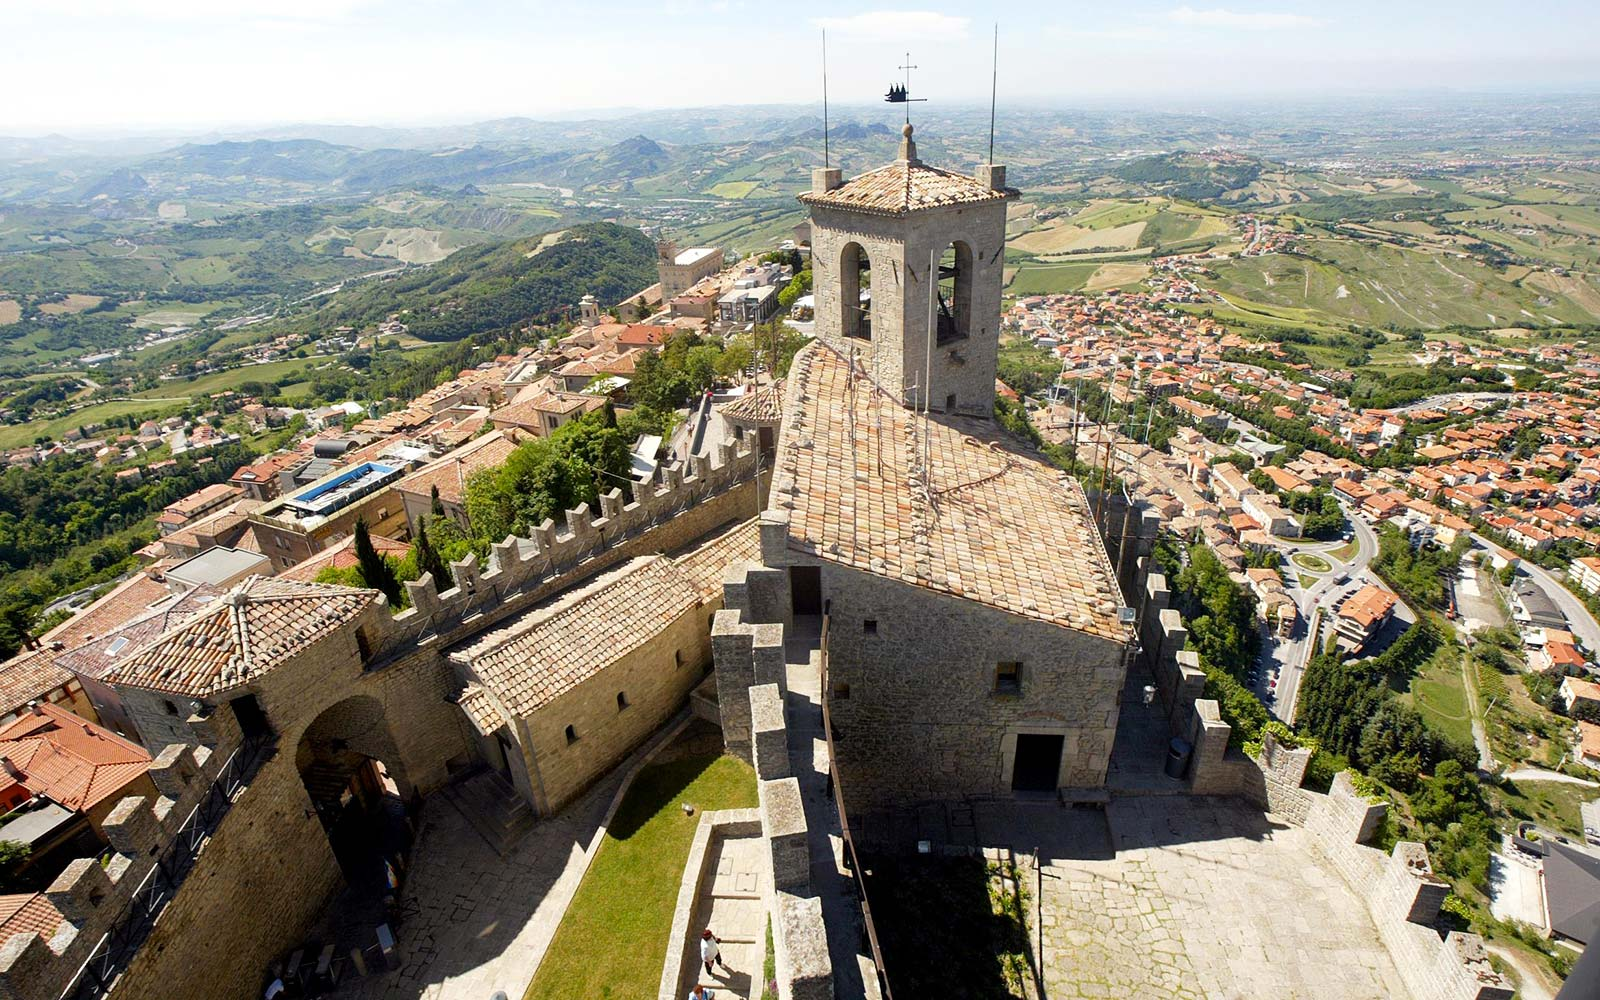 main fort, La Guaita, guarding over the walled enclosure of historic San Marino, the oldest republic in the world. Comprising only 60 square kilometres, it is therefore completely landlocked within the borders of Italy's nort